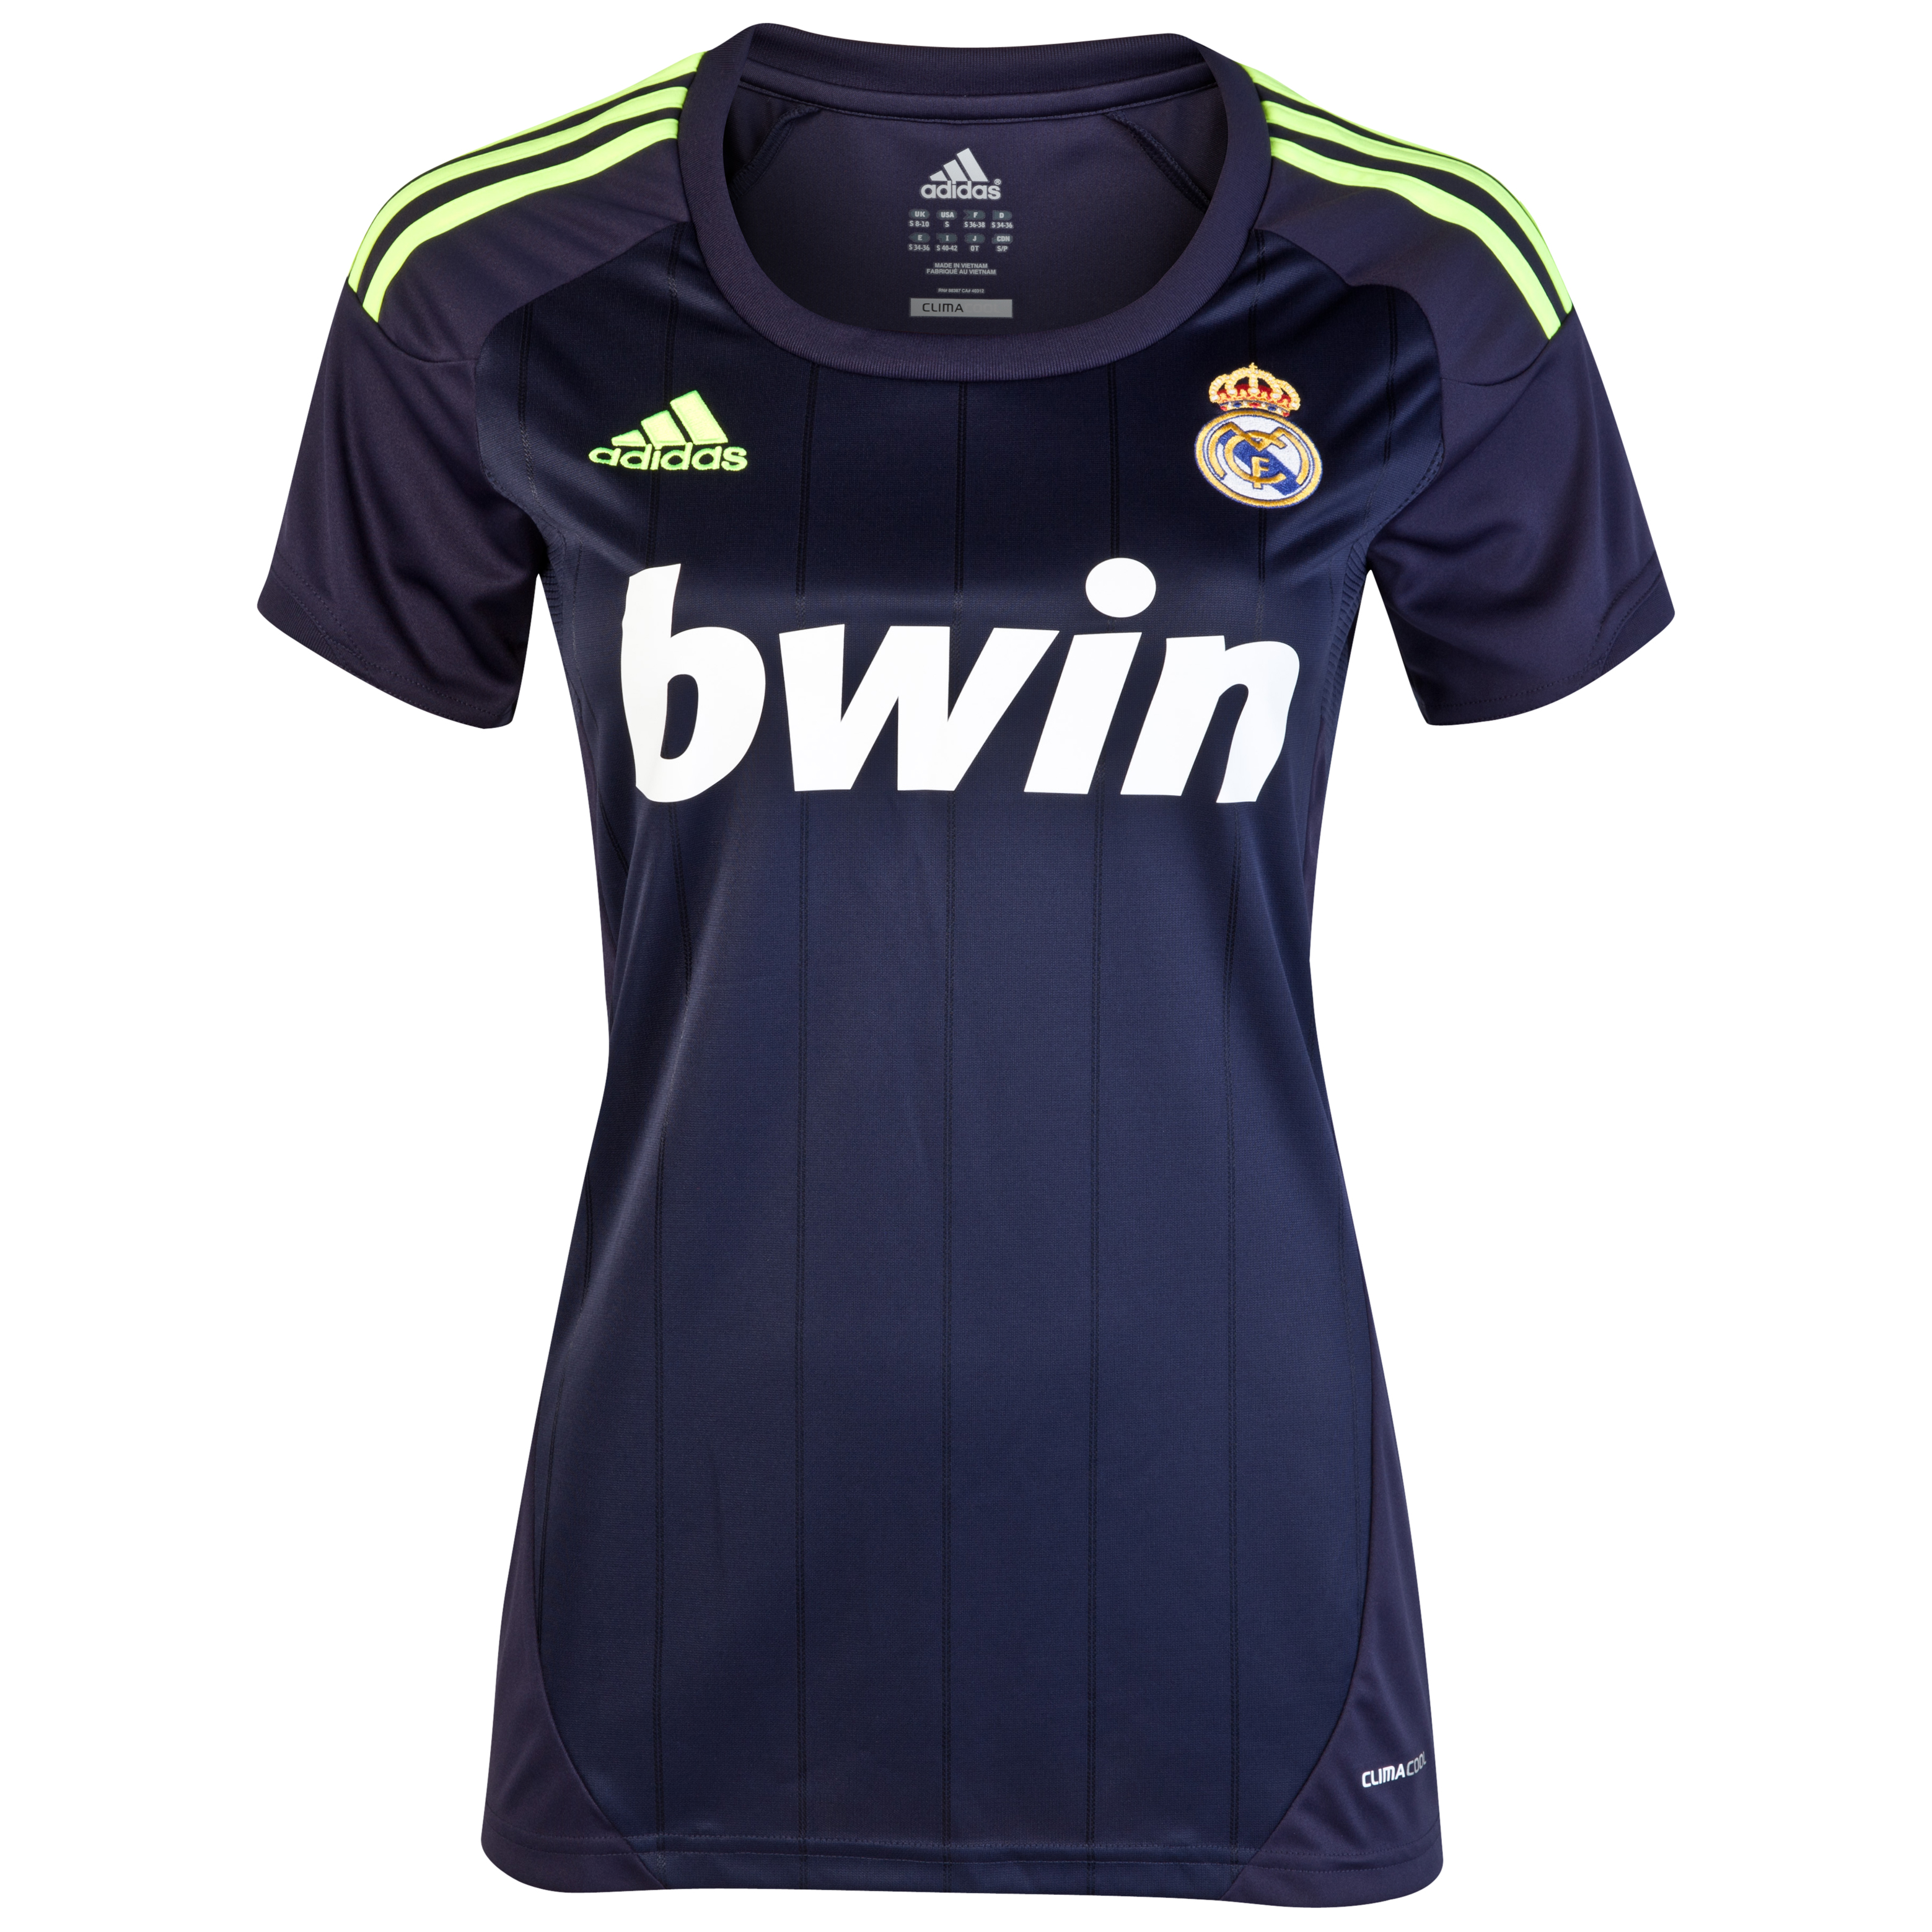 Buy Real Madrid Away Kit 2012/13 Womens